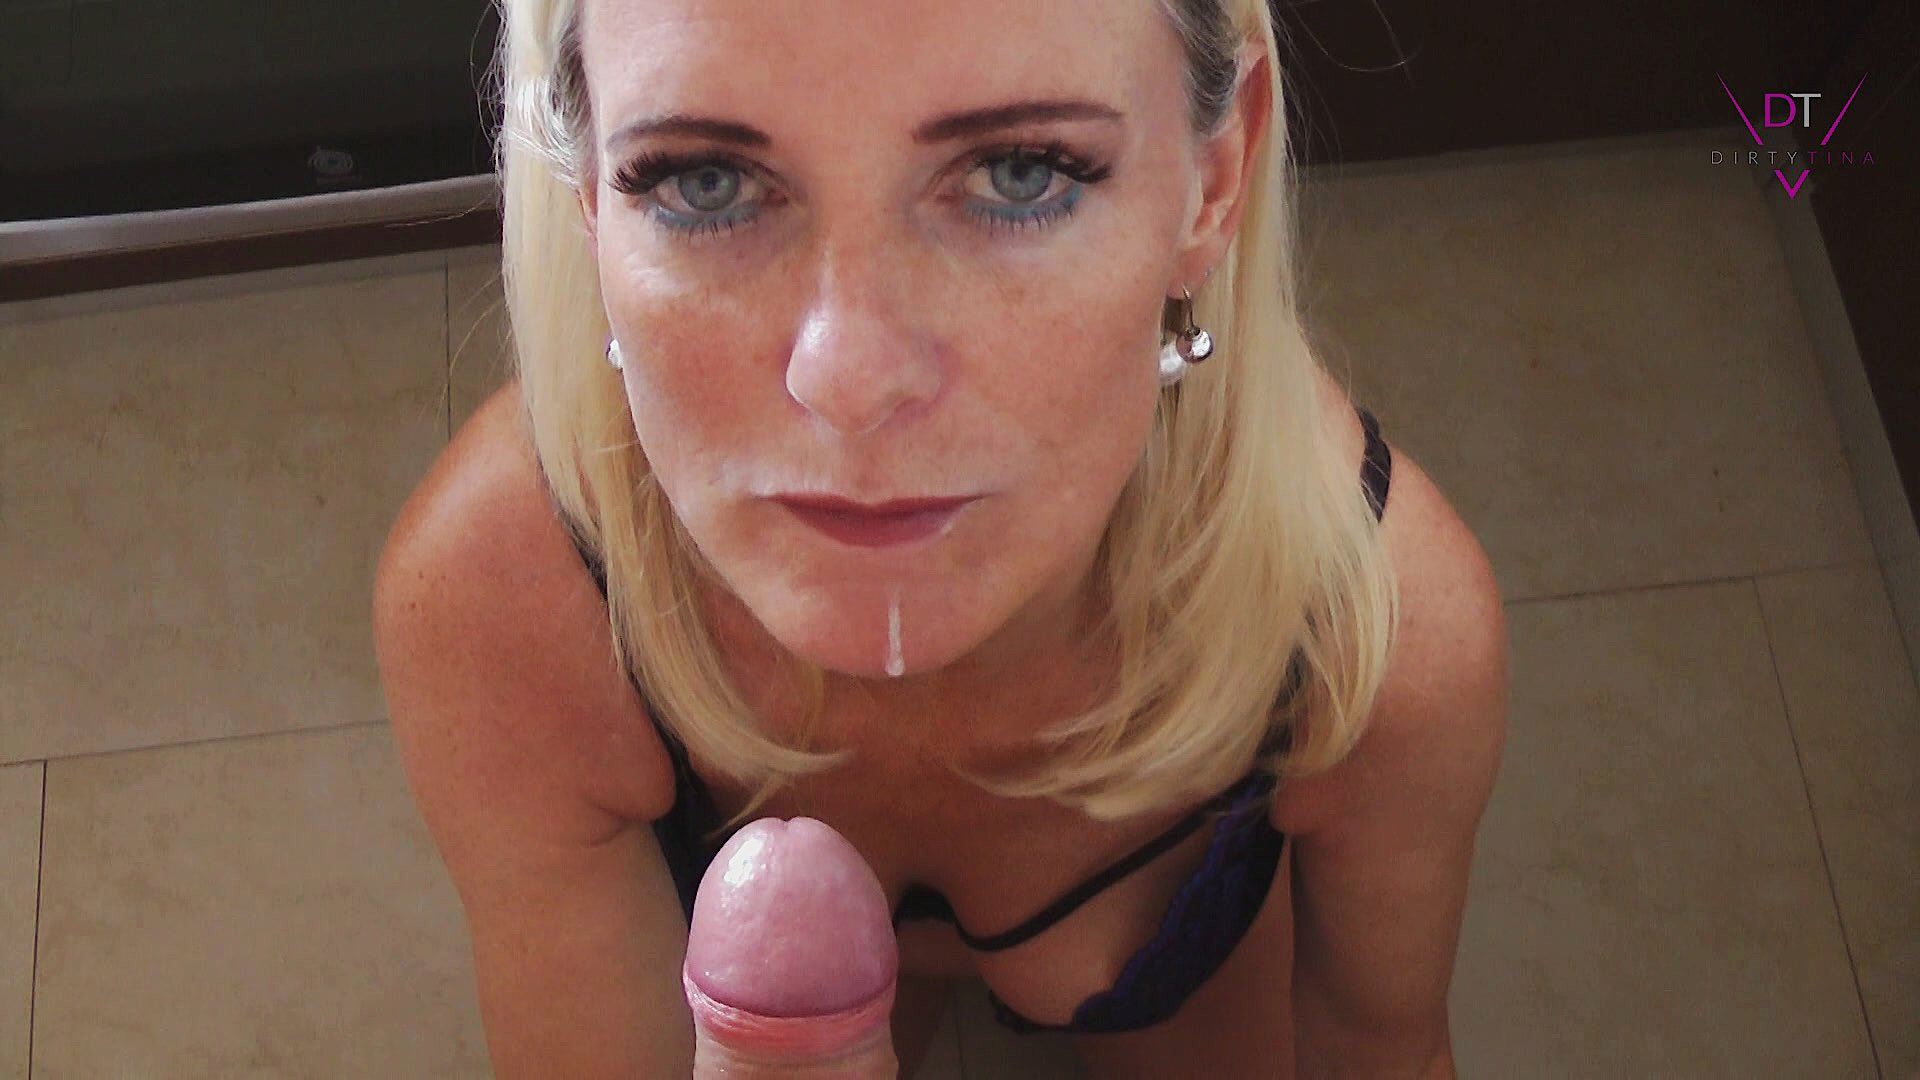 Dirty Tina Blowjob